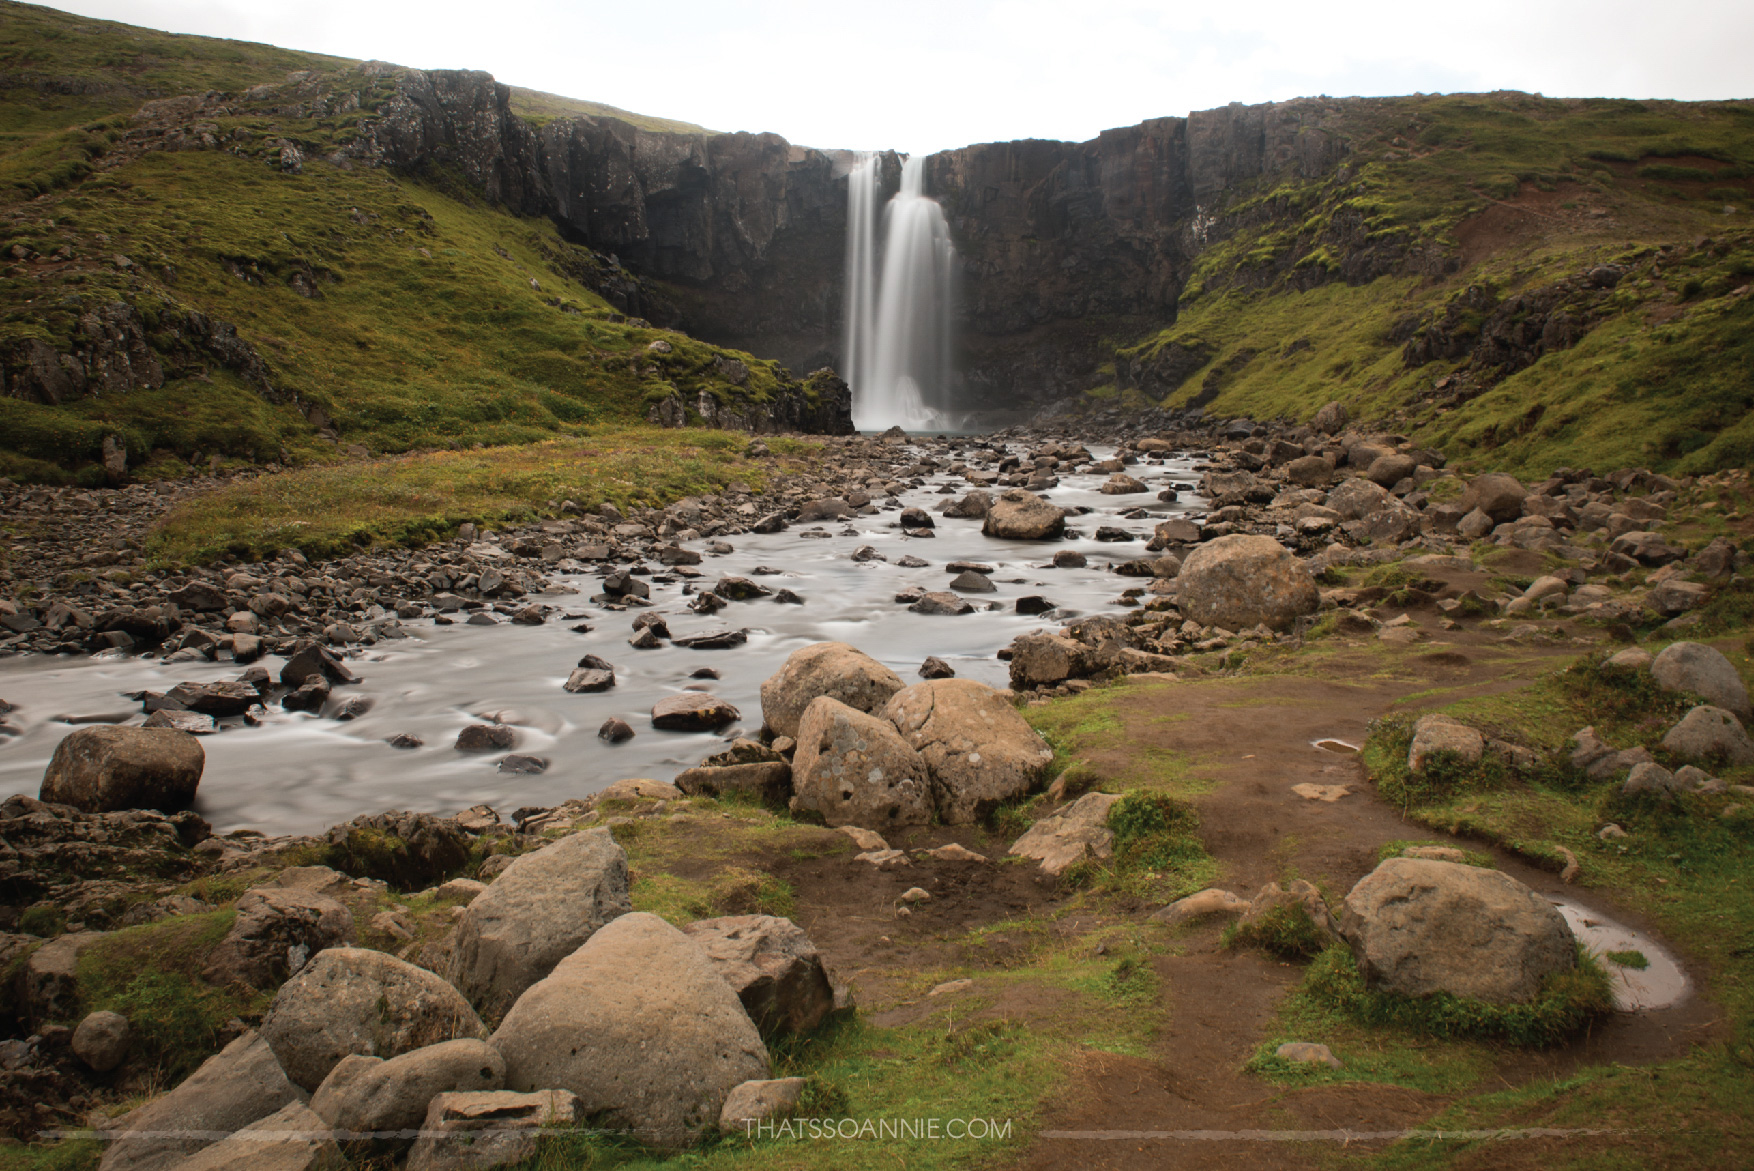 Gufufoss is a gorgeous, secluded and tourist-free hidden gem, just by the side of the road that takes you to Seyðisfjörður, Iceland.